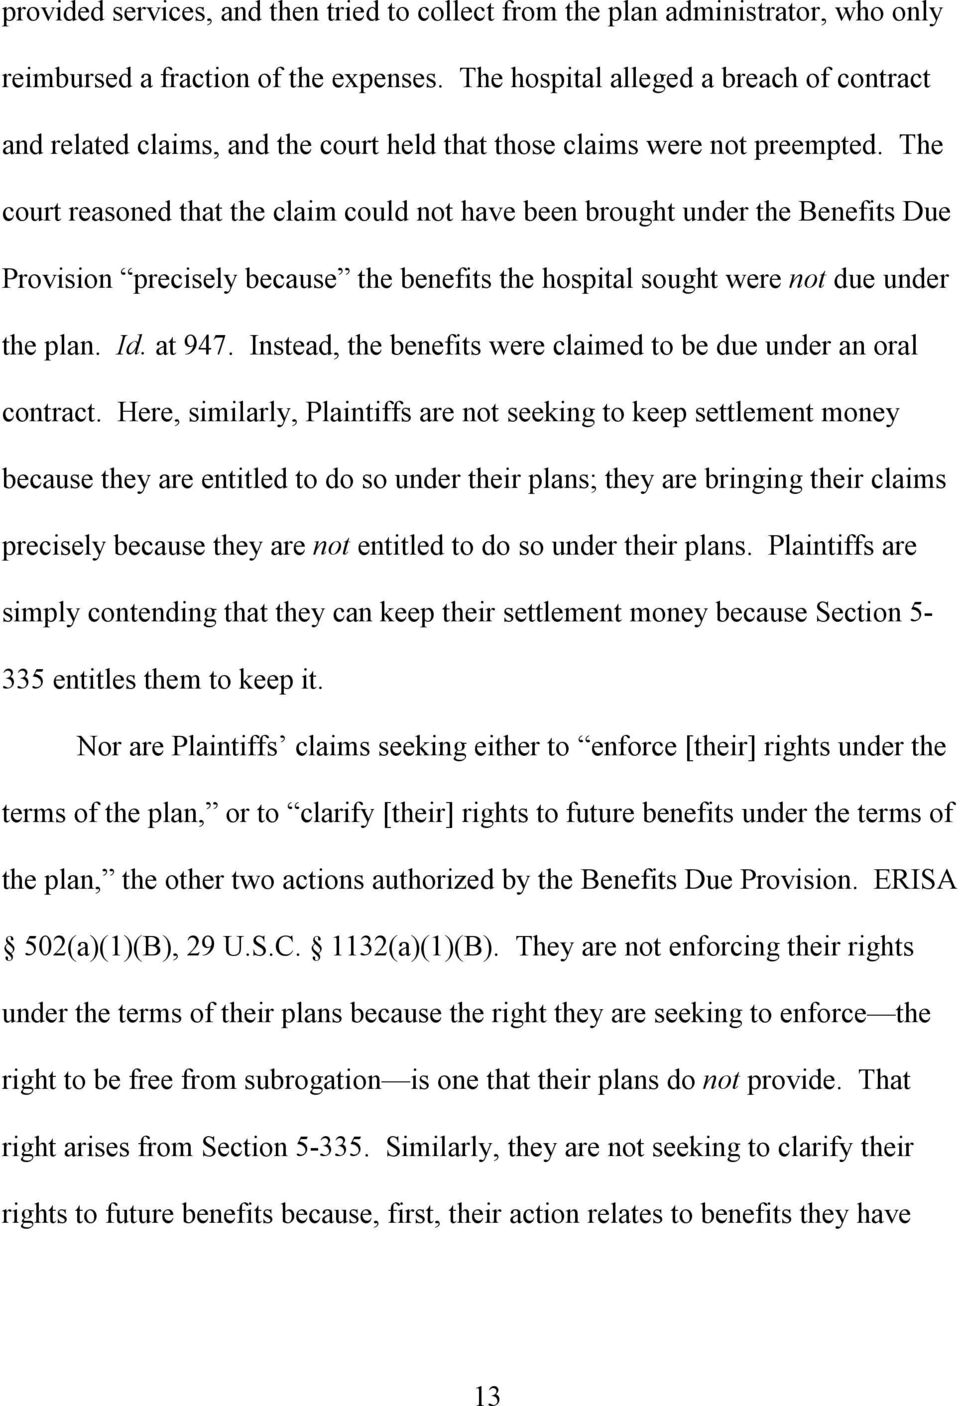 The court reasoned that the claim could not have been brought under the Benefits Due Provision precisely because the benefits the hospital sought were not due under the plan. Id. at 947.